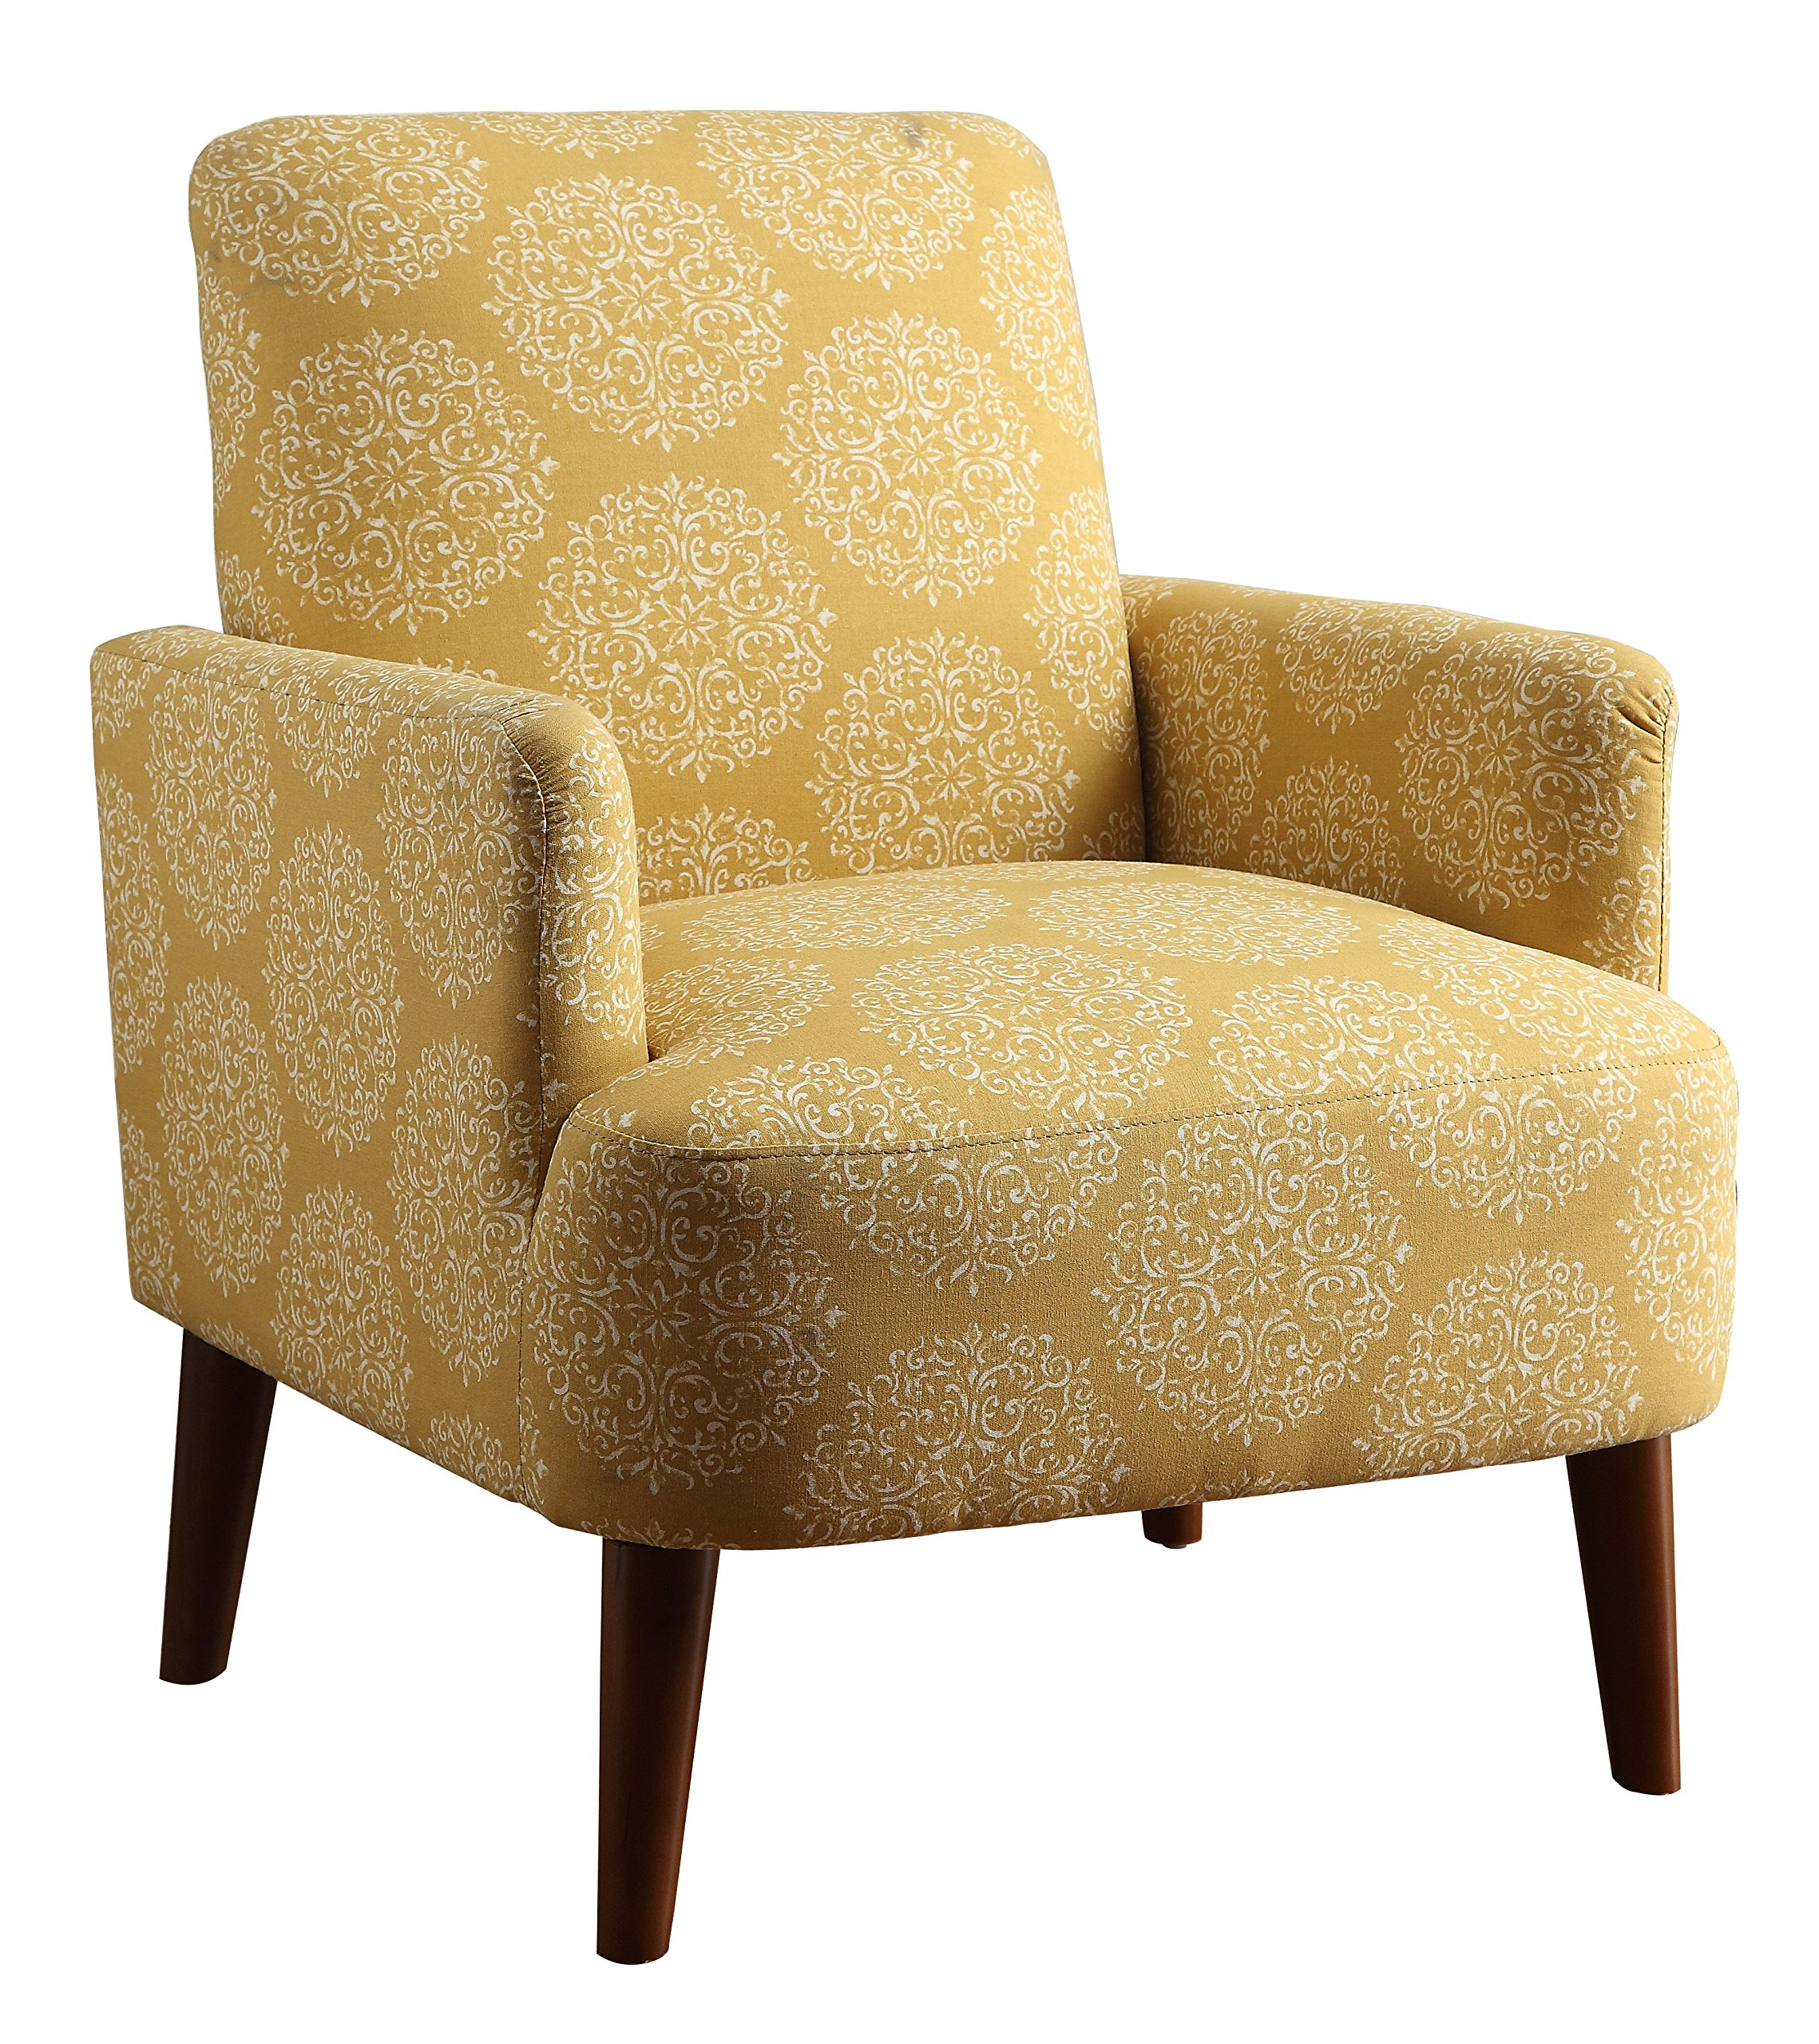 HOMES: Inside + Out IDF-AC6189YW Whilma Accent Living Room Chair, Yellow